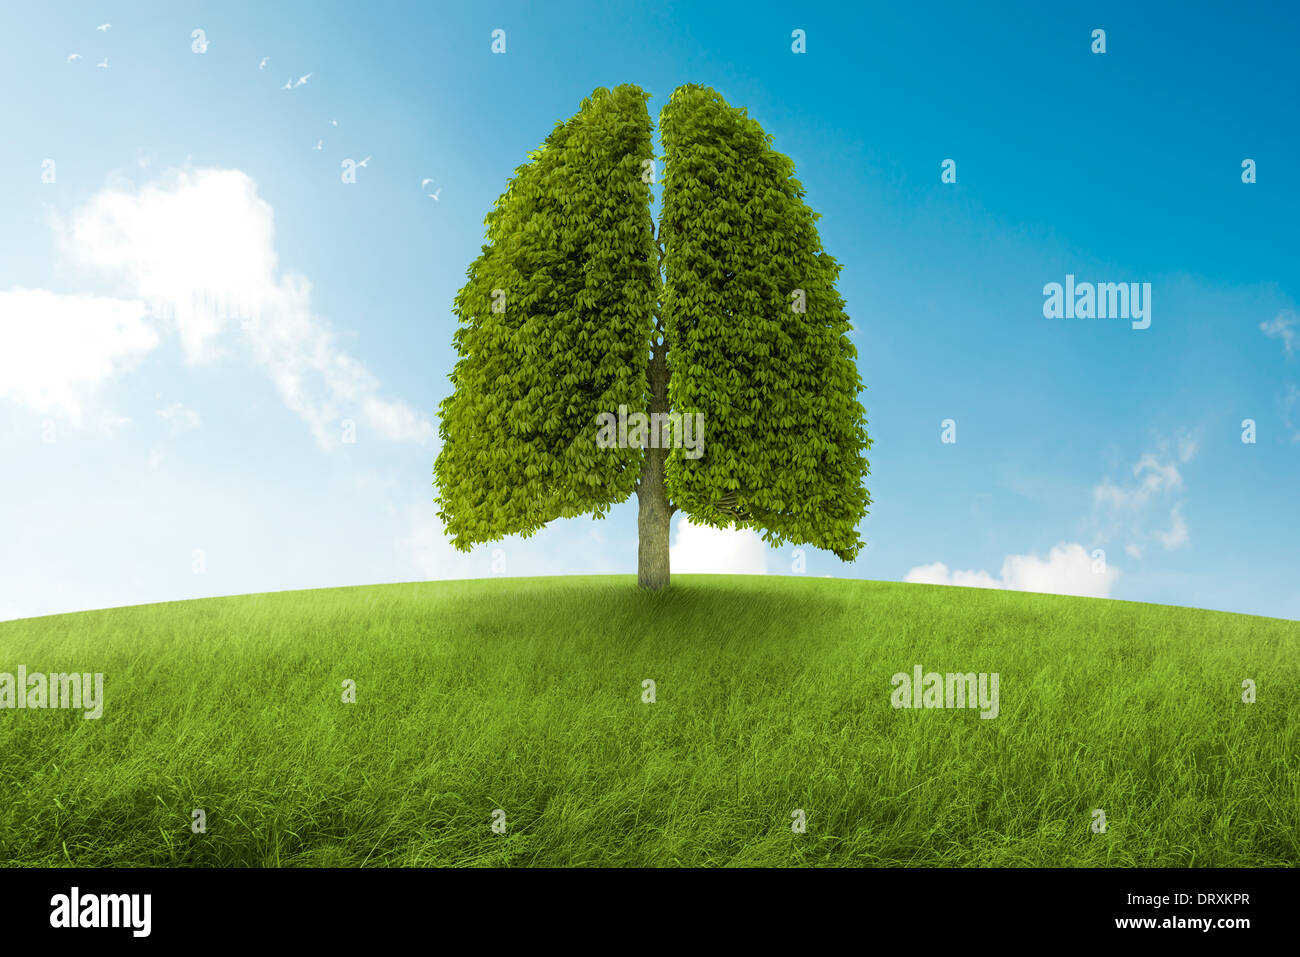 Tree with form of lungs, oxygen for the earth - Stock Image